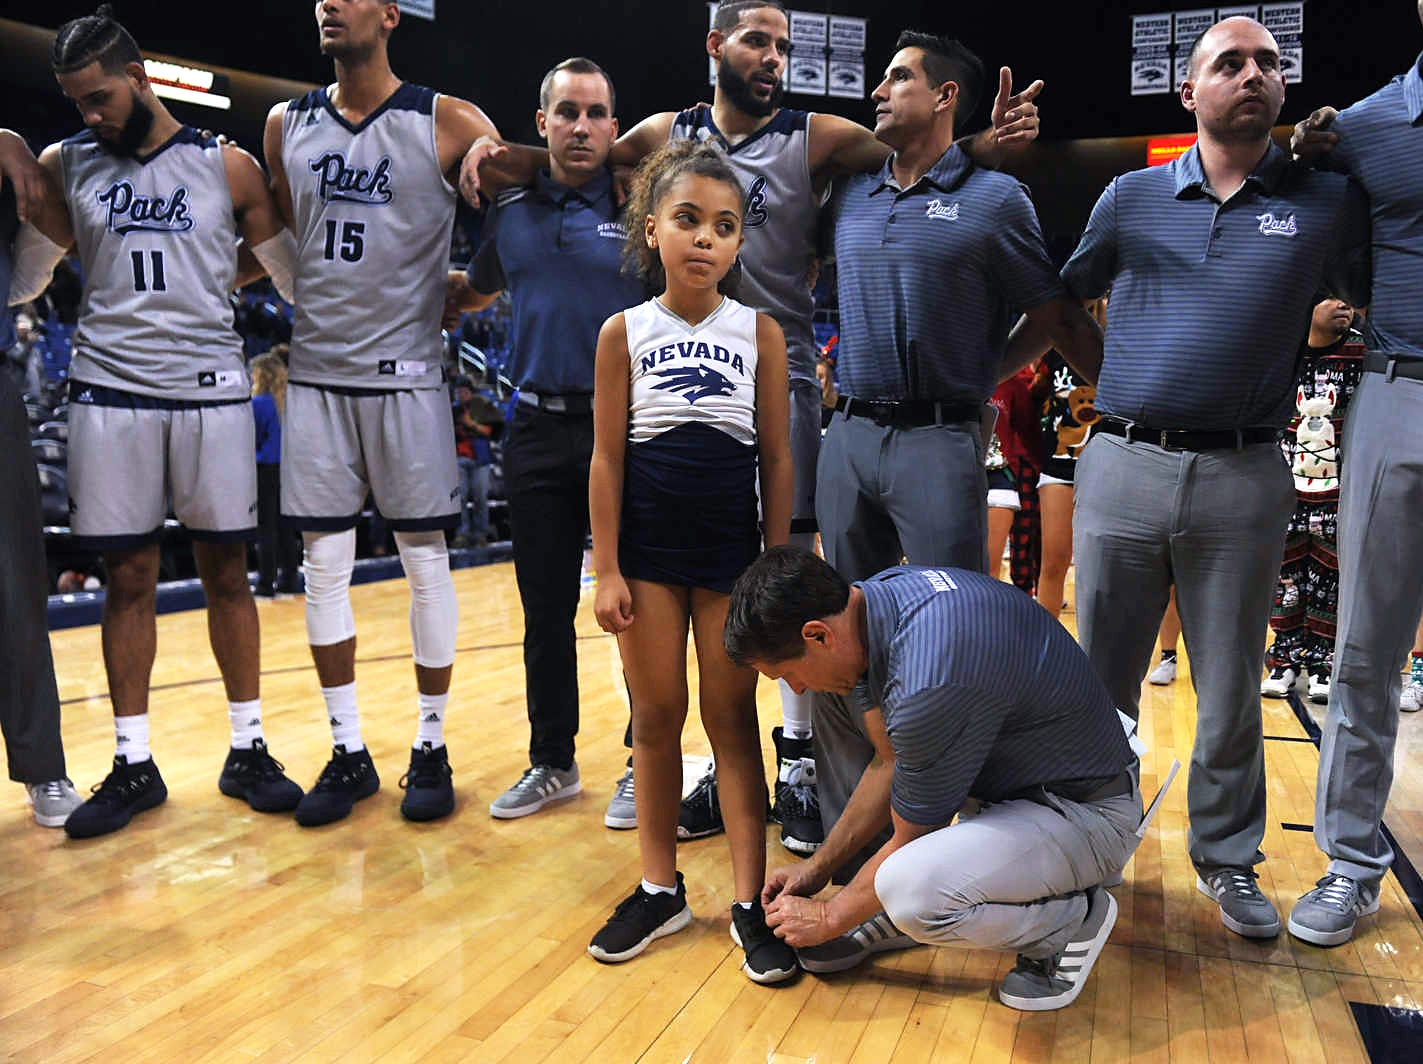 Nevada head coach Eric Musselman ties is daughter's shoe lace directly following their basketball game at Lawlor Events Center in Reno on Dec. 15, 2018.